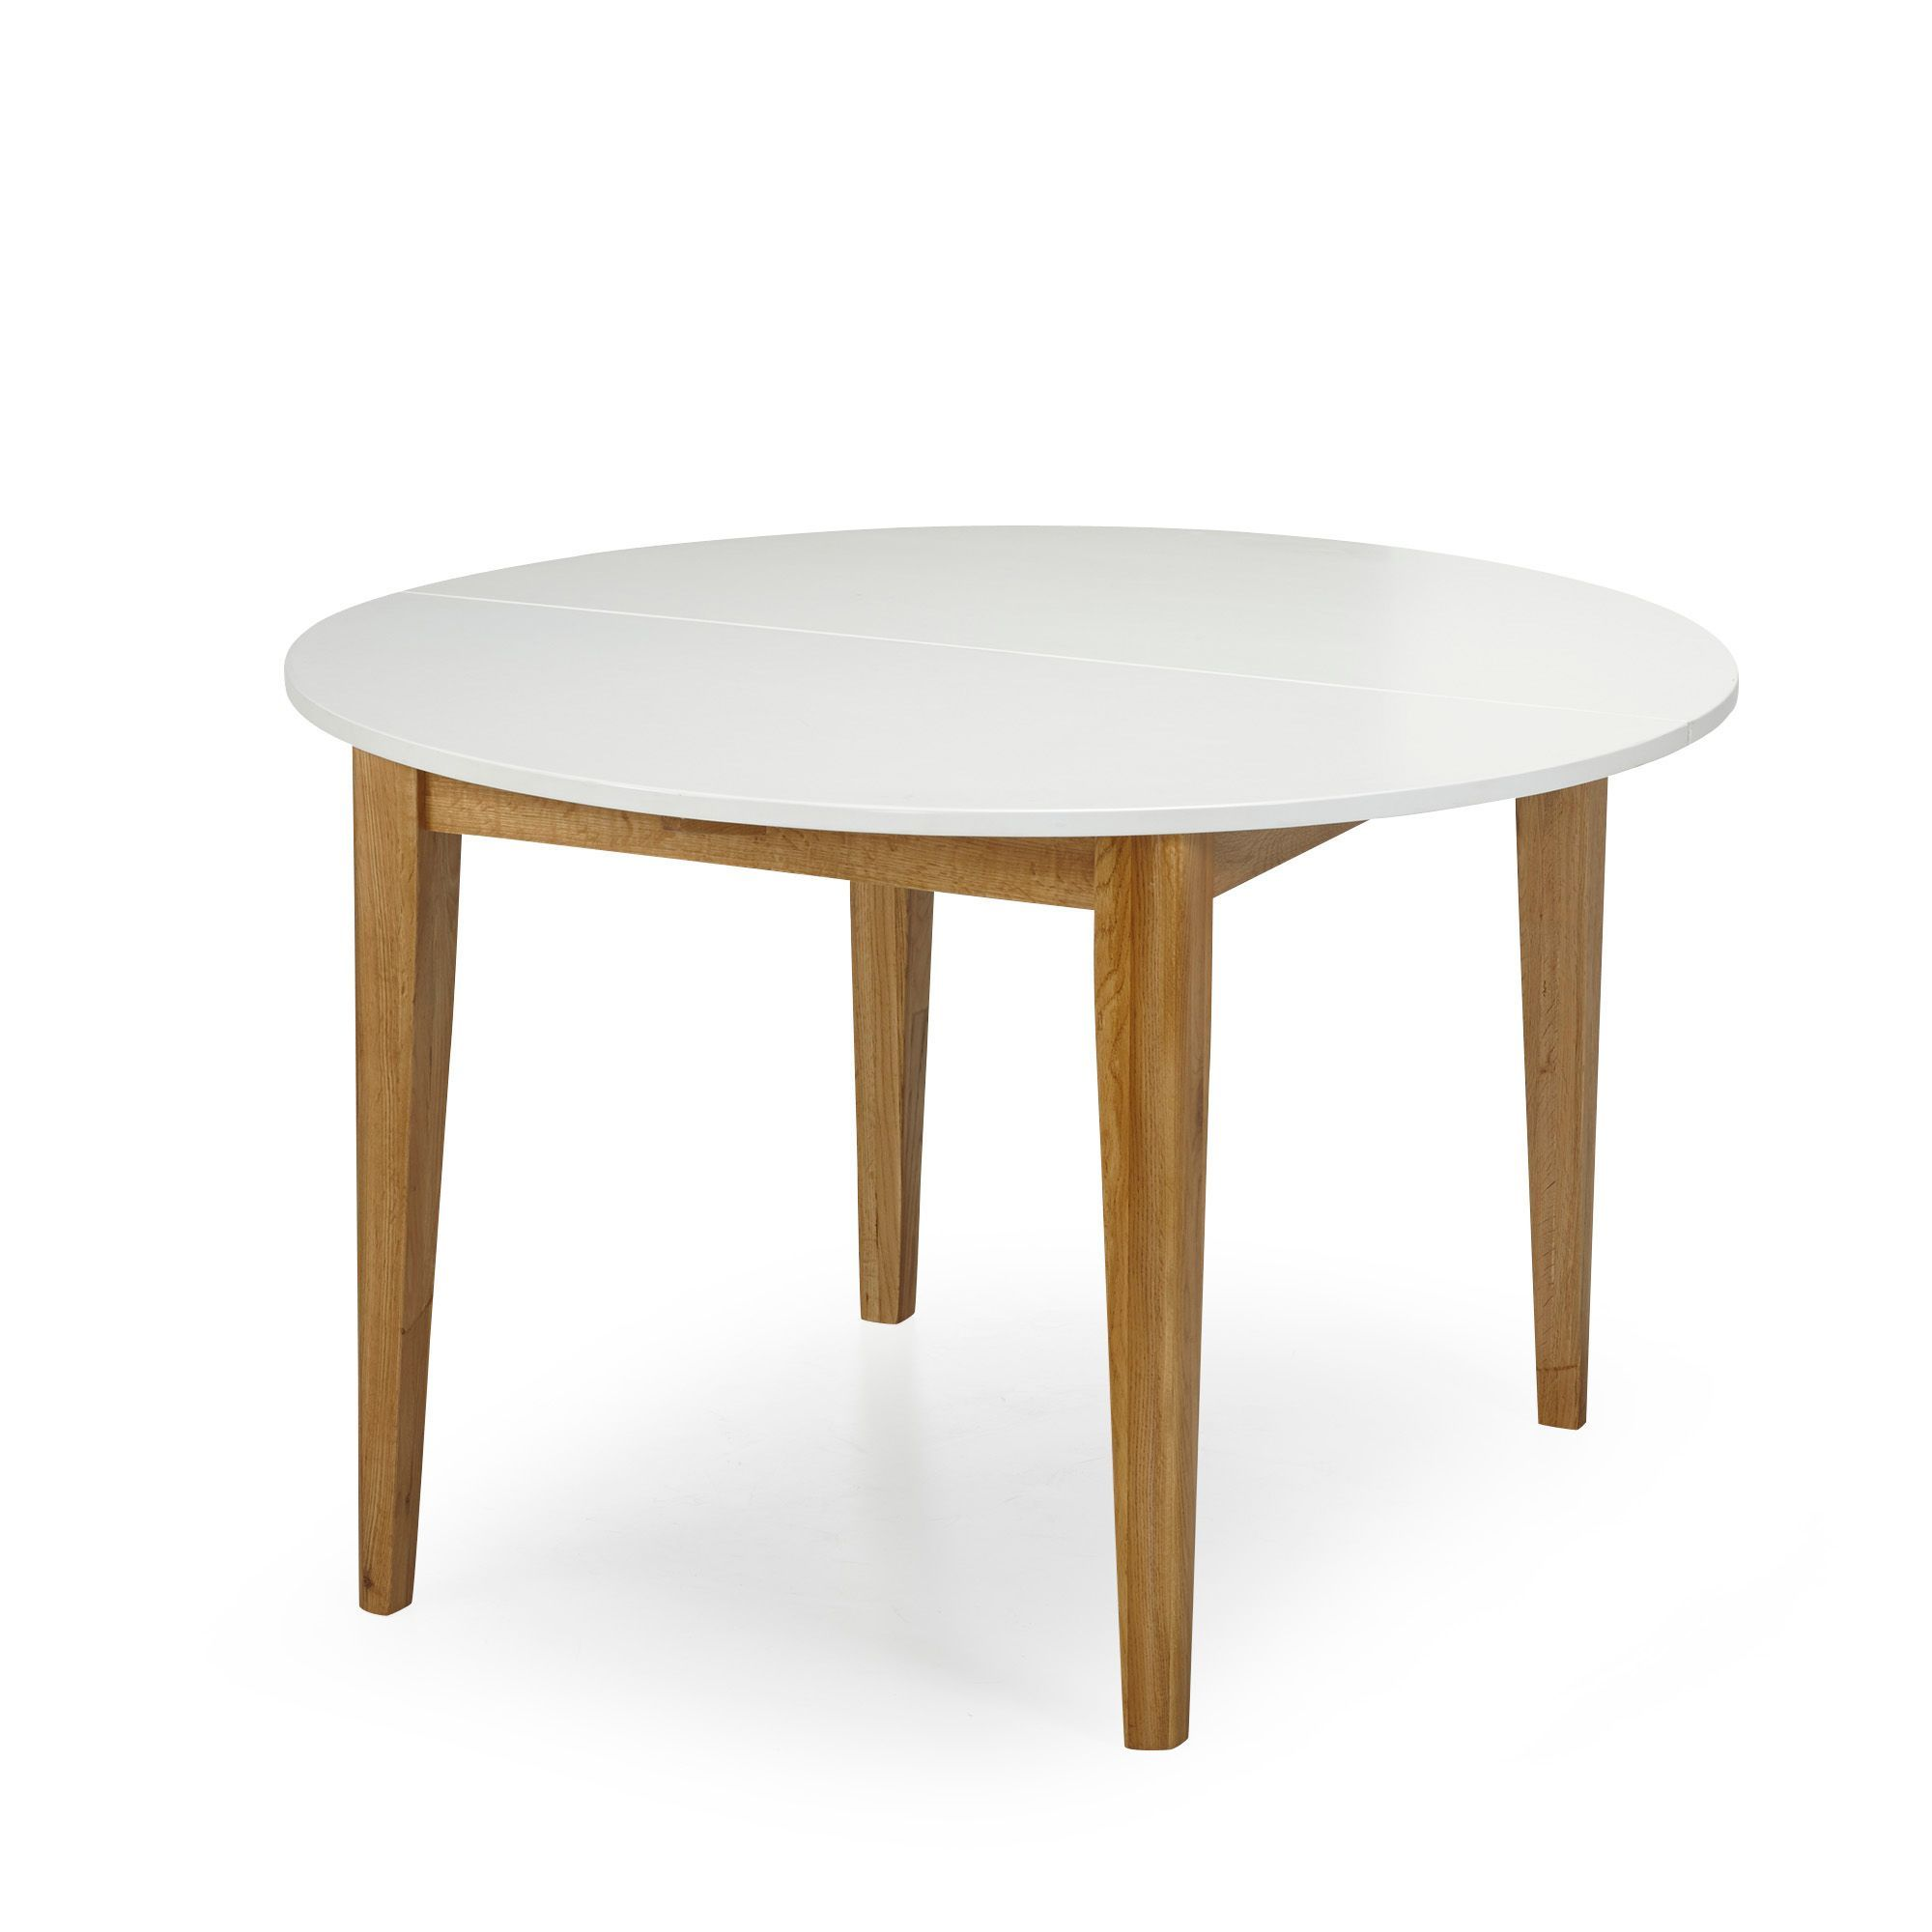 Table Gigogne X2 Opale Vente De Table Basse Conforama Table Basse Table Basse Conforama Tables Gigognes